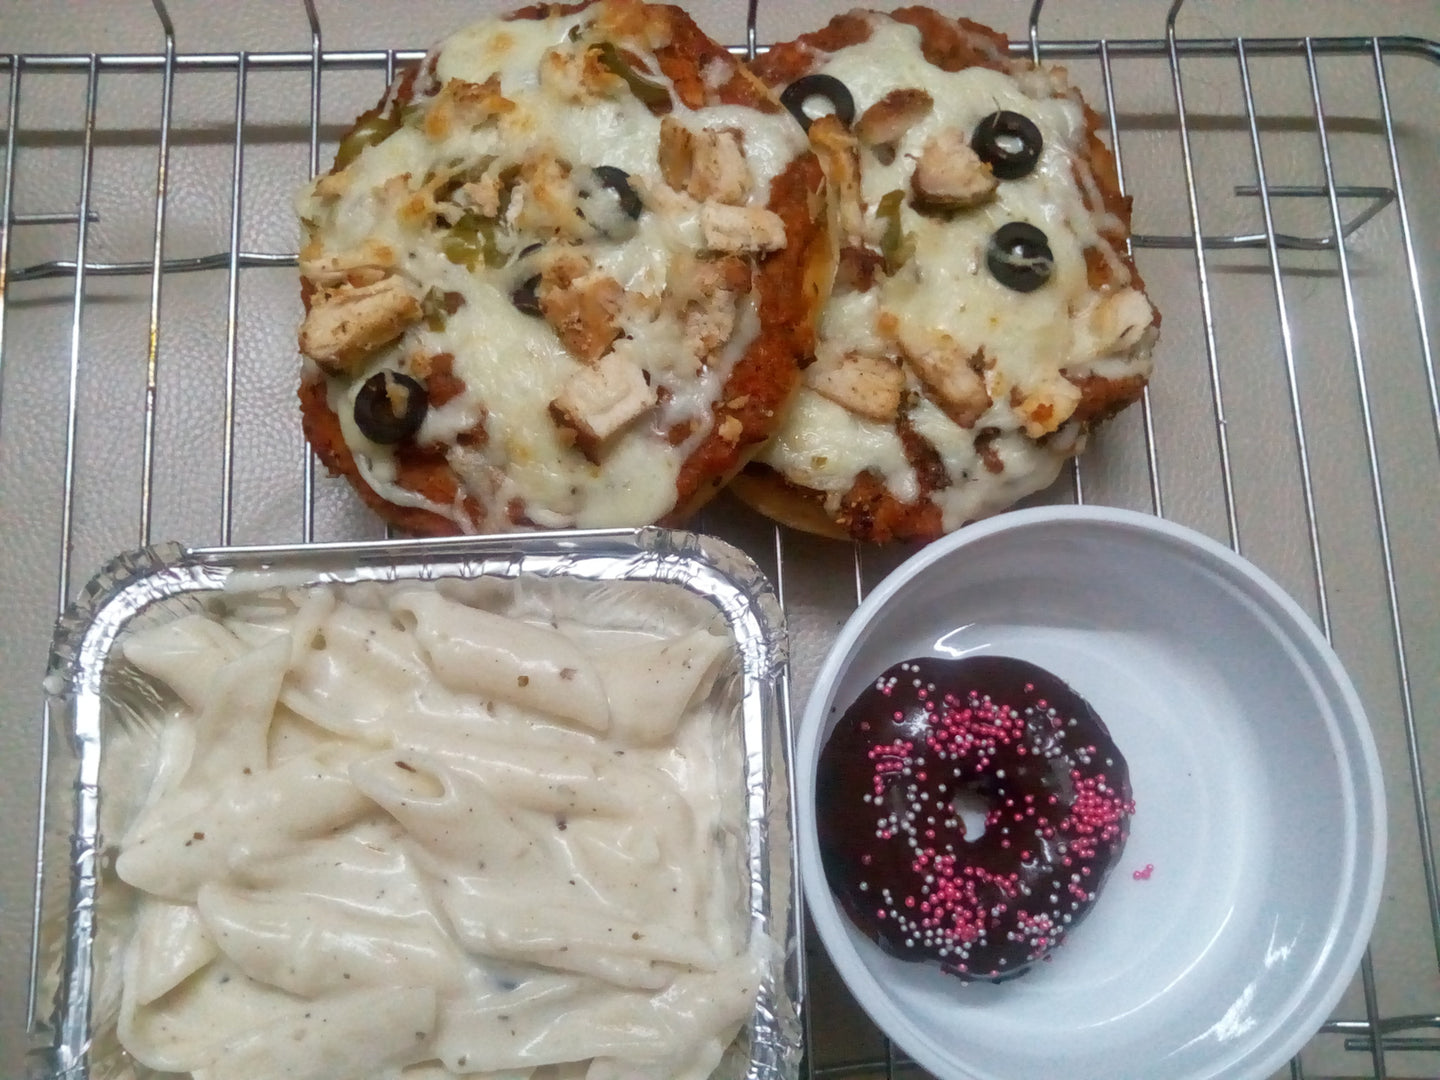 Non veg Chicken pizza (2) with Creamy Pasta, Dessert and Iced Tea